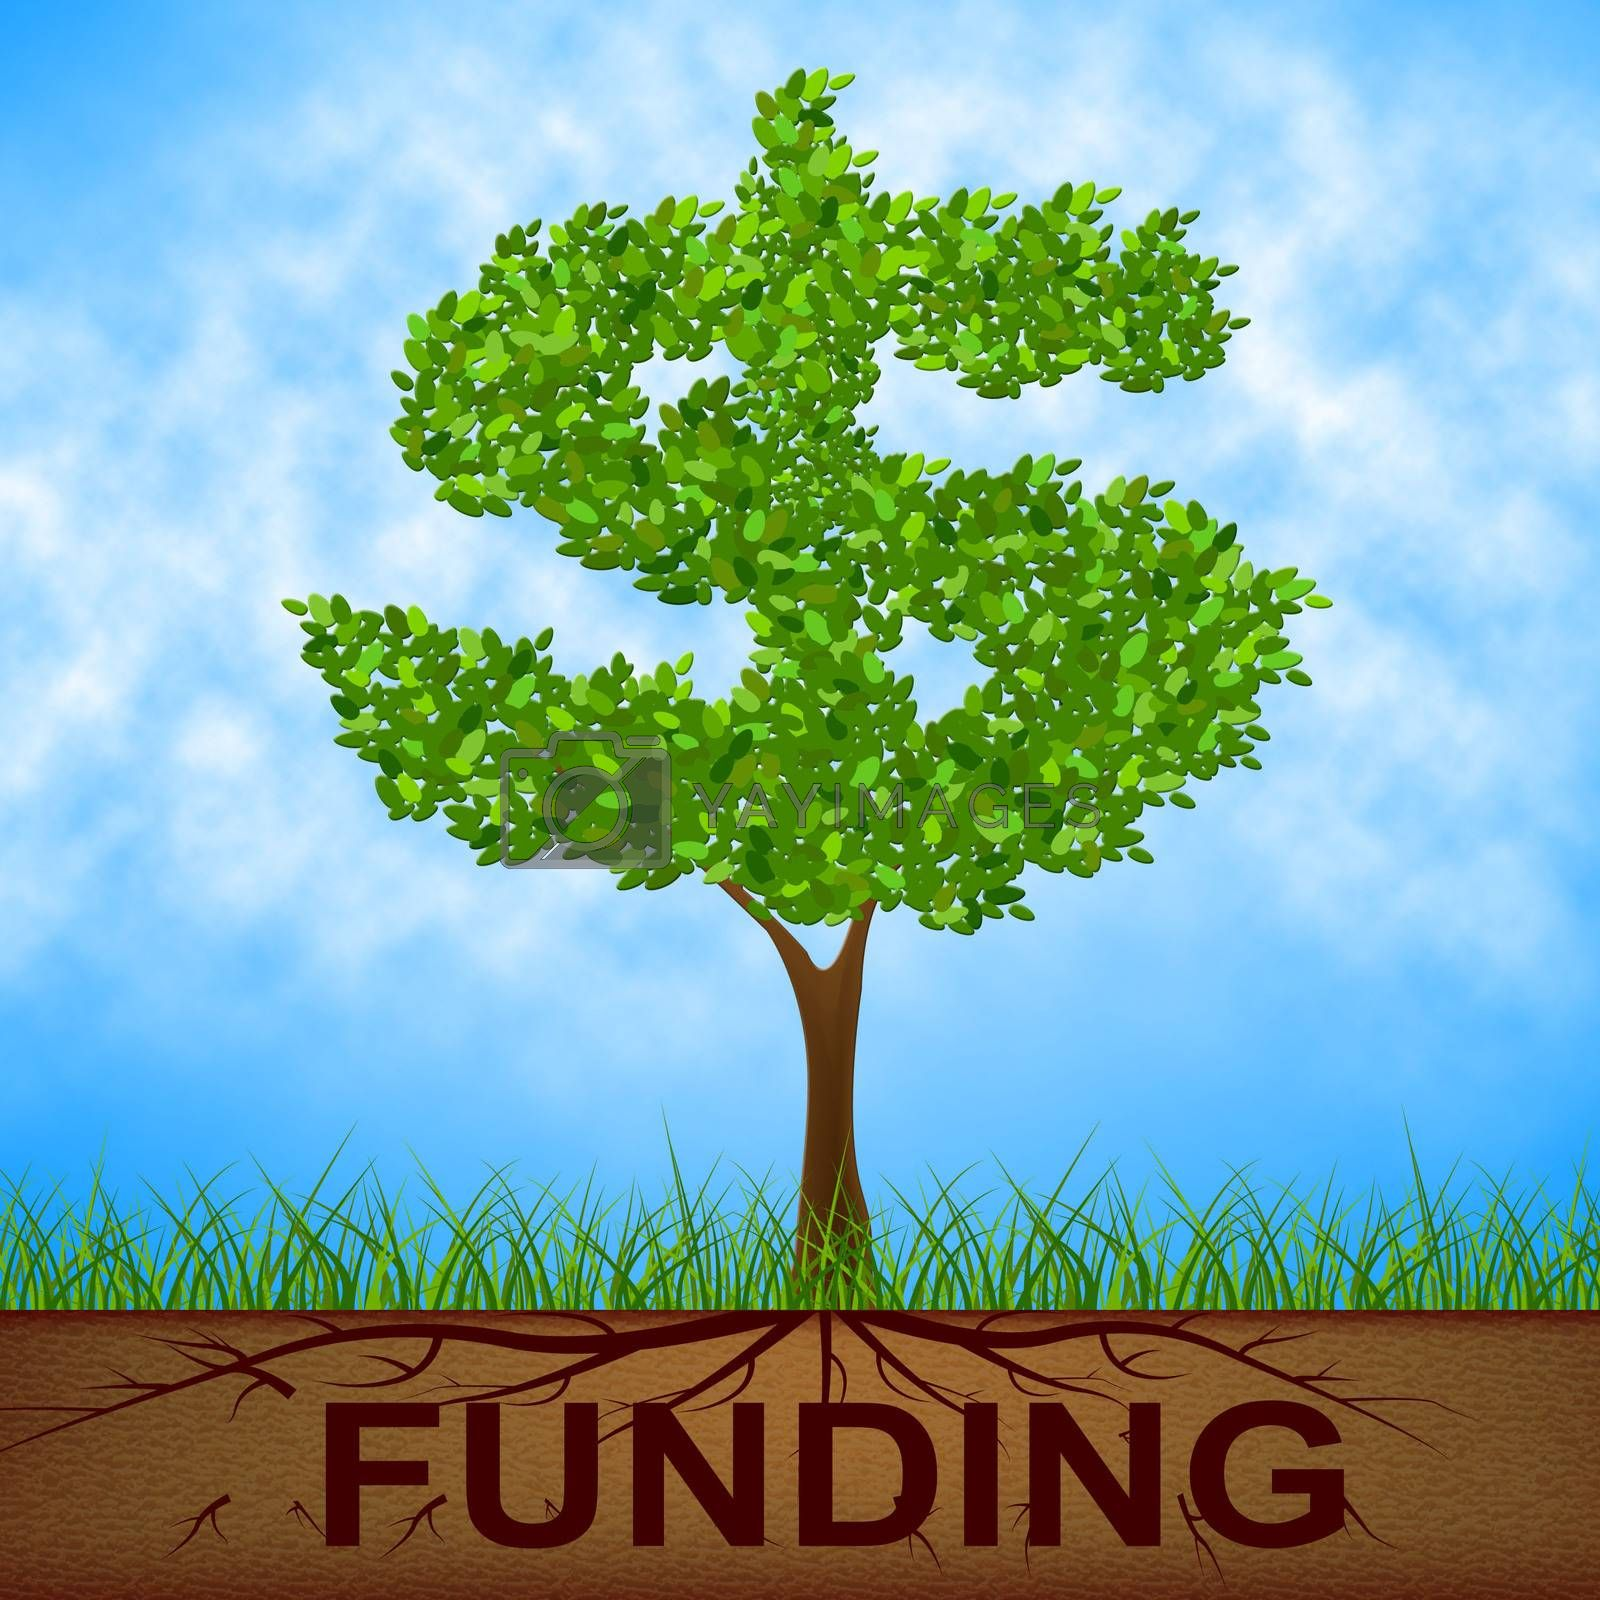 Funding Tree Means United States And Banking by stuartmiles